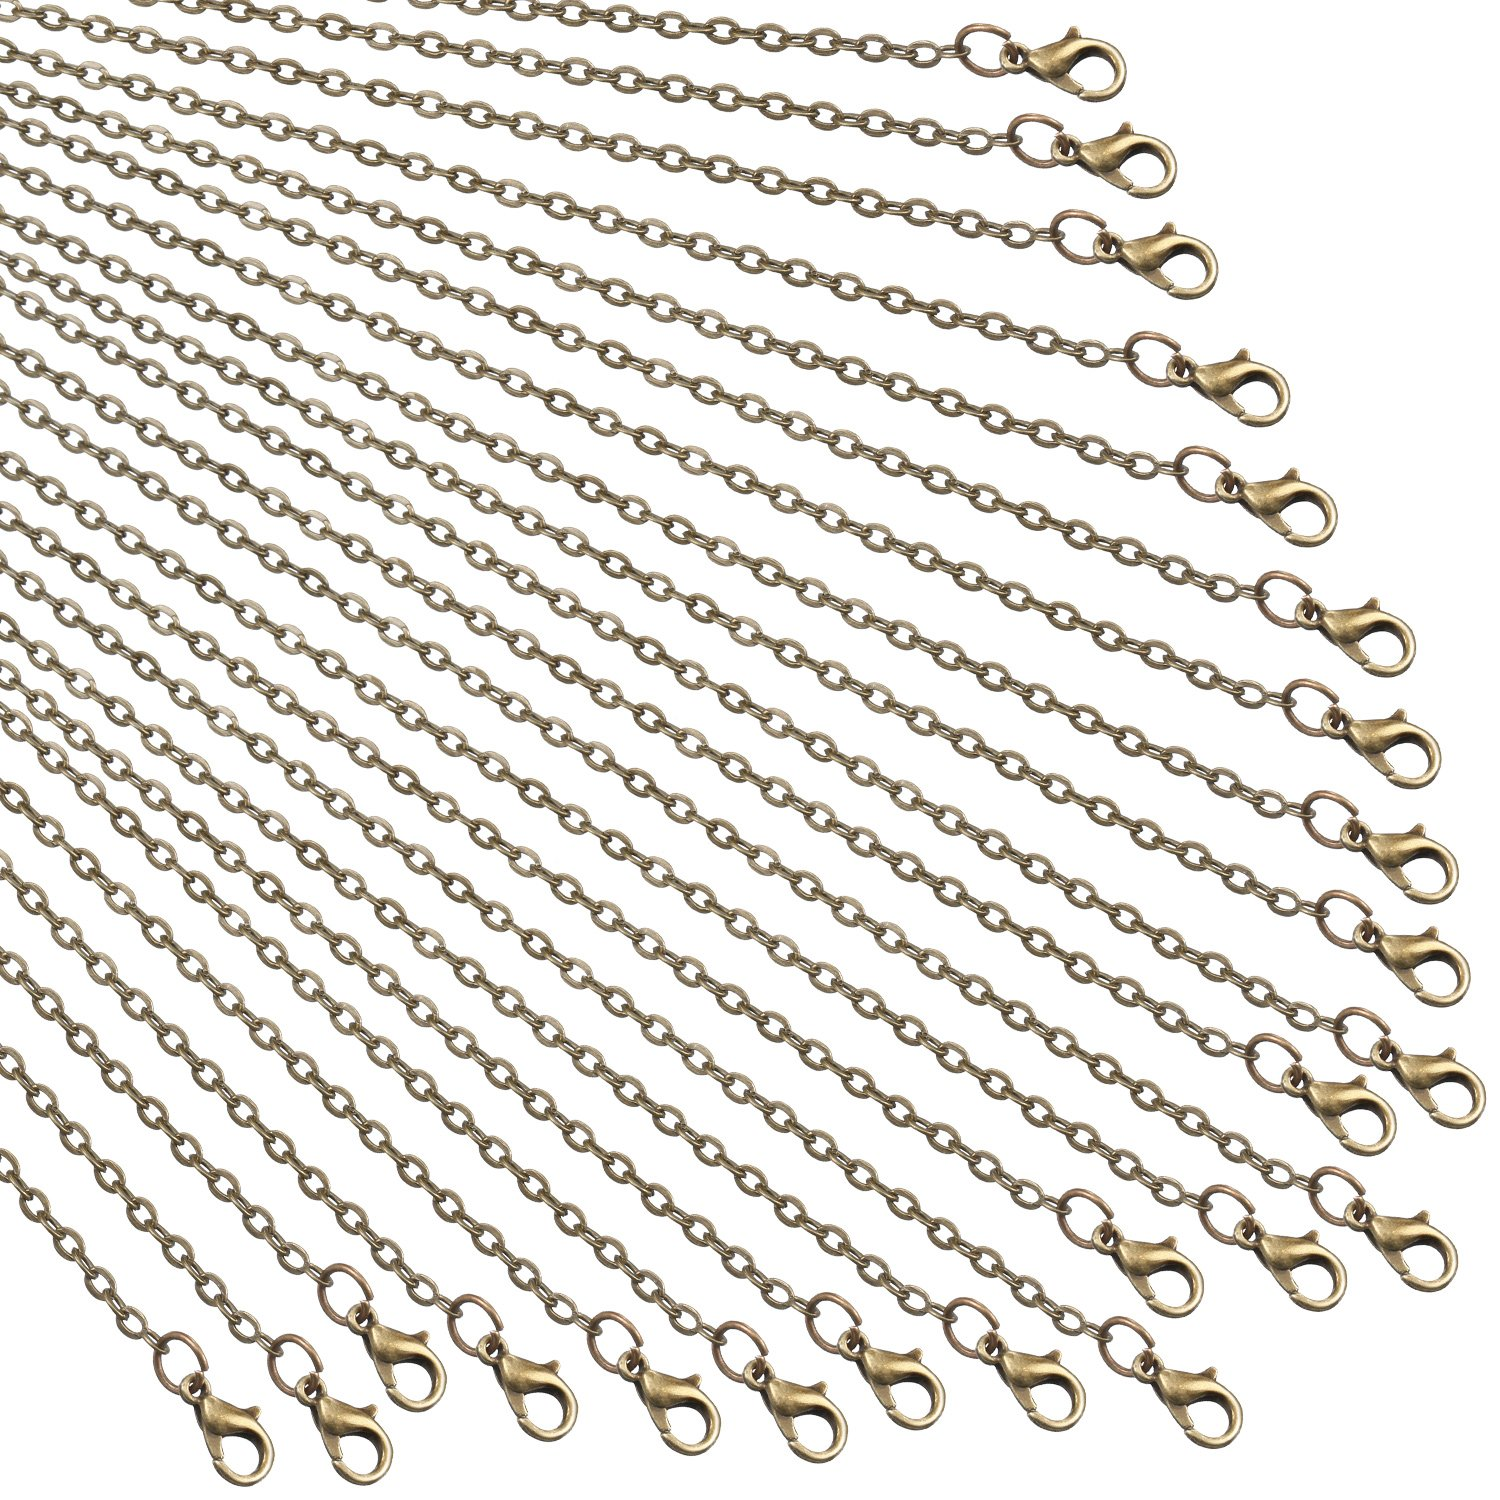 TecUnite 24 Pack Bronze Link Cable Chain Necklace DIY Chain Necklaces (18 inch) TecUnite-Chain Necklace-01